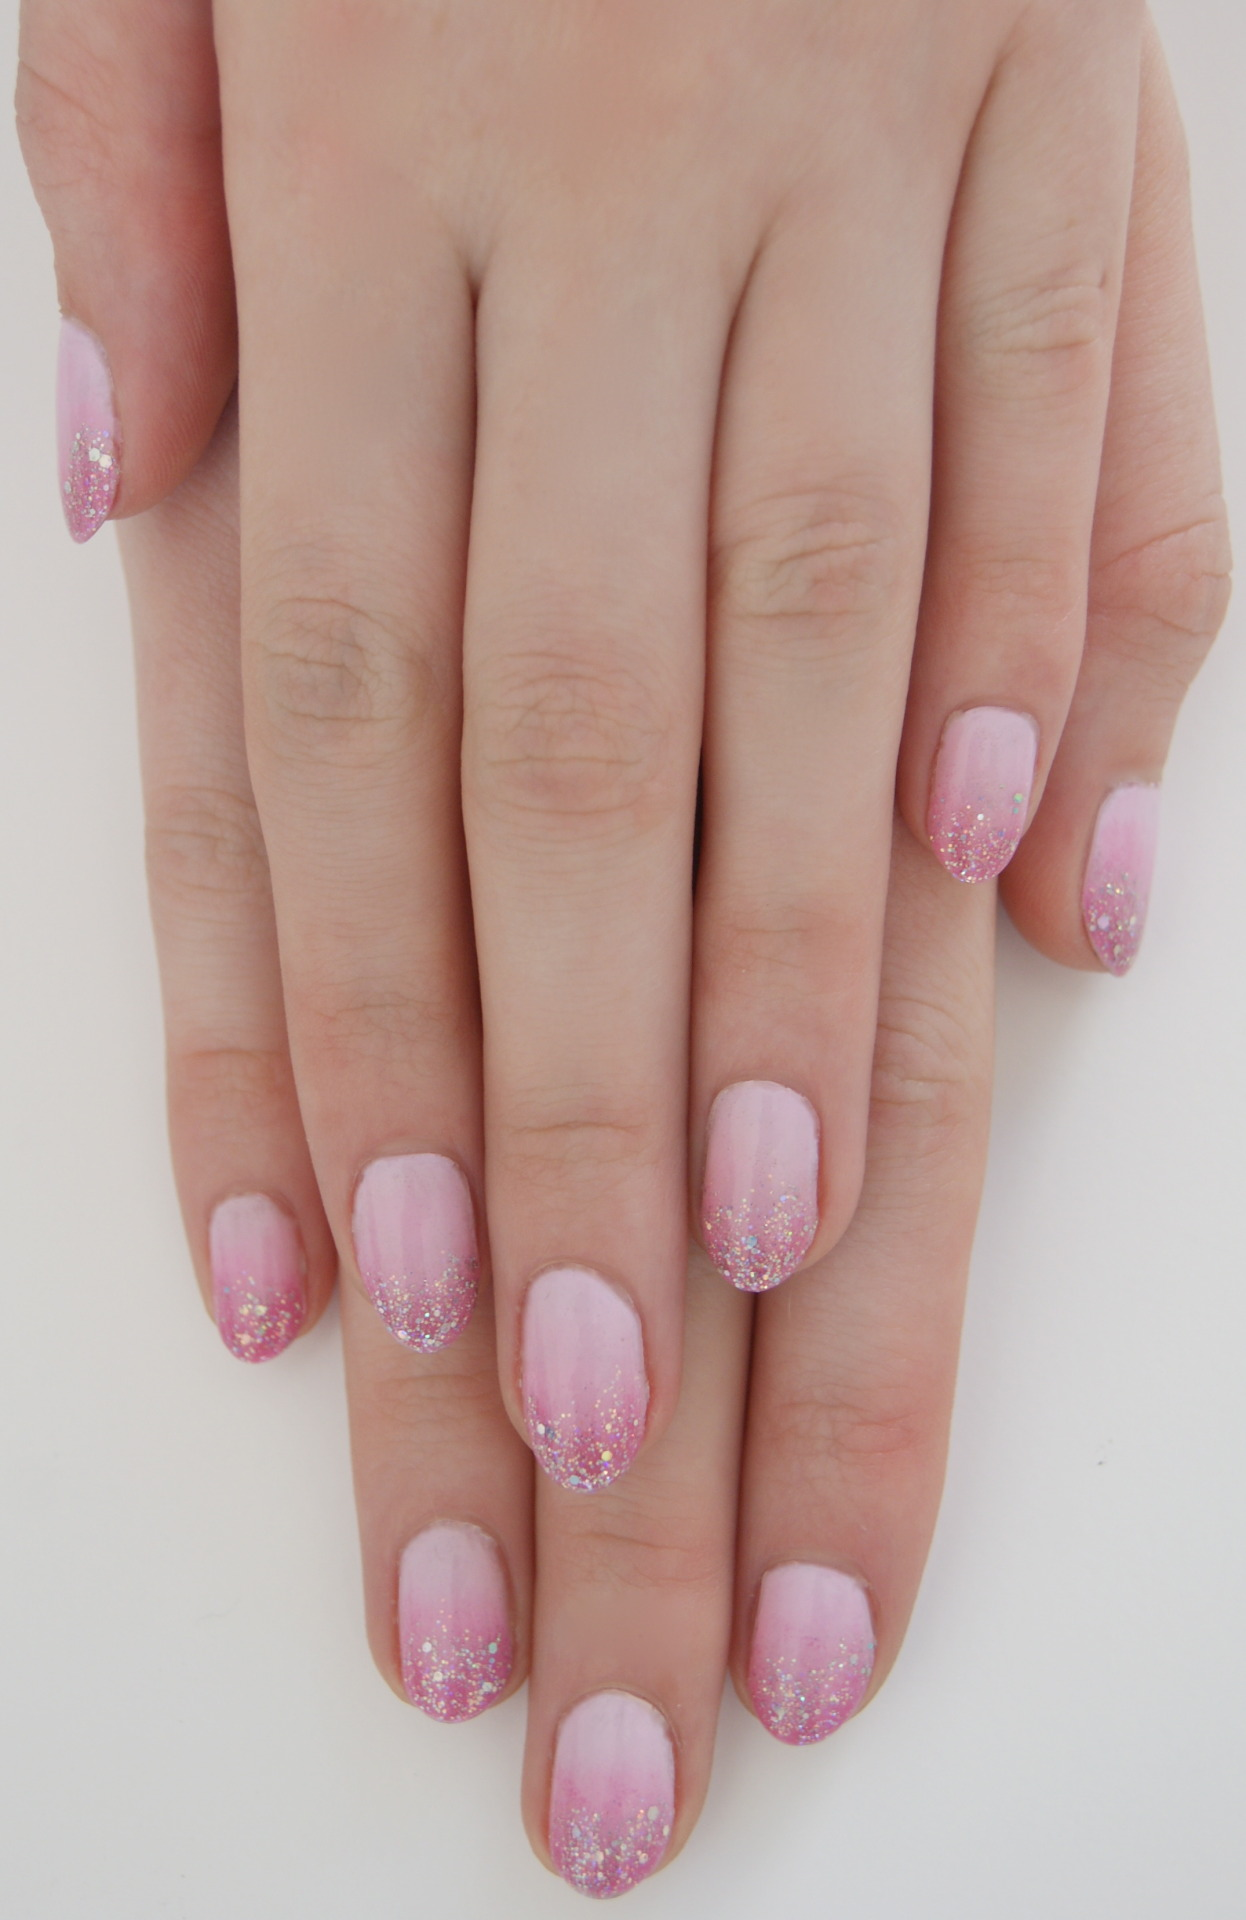 Princess nails・゜*:・゚♡